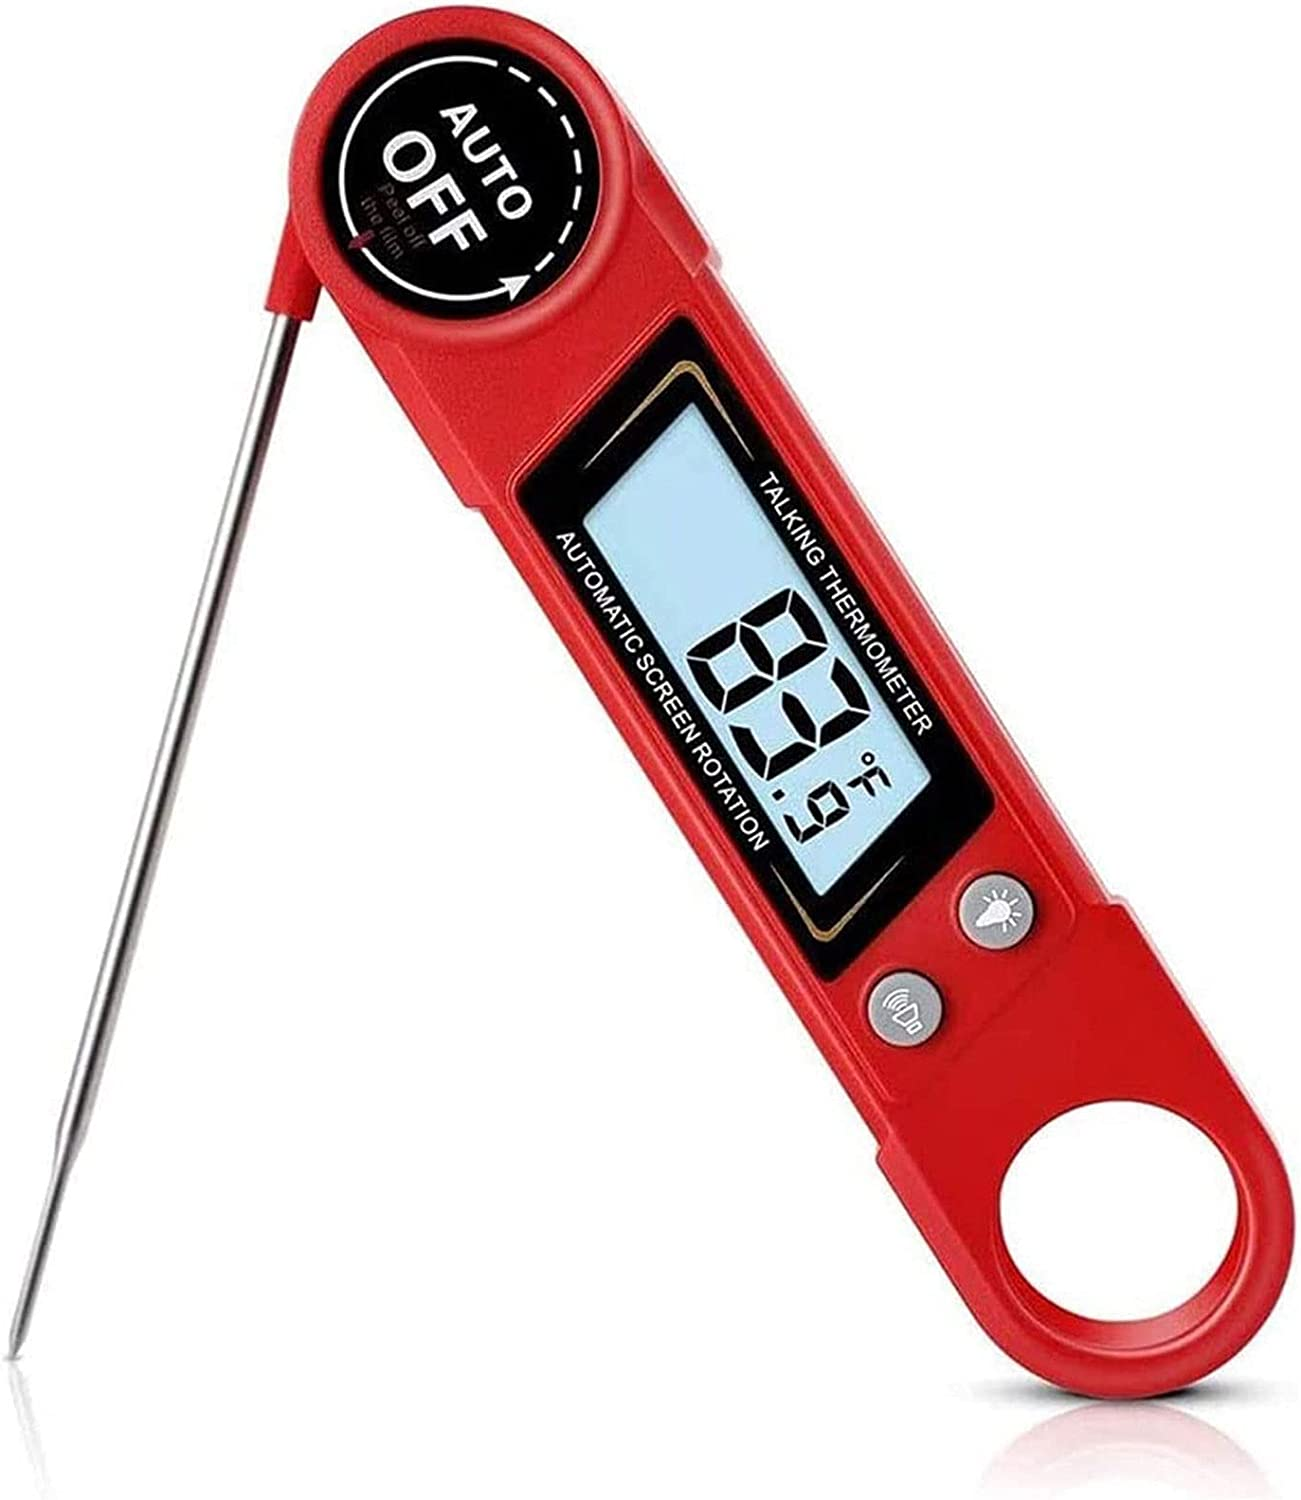 Odekai Low price Waterproof Denver Mall Digital Meat Thermometer Grilling Bac with for